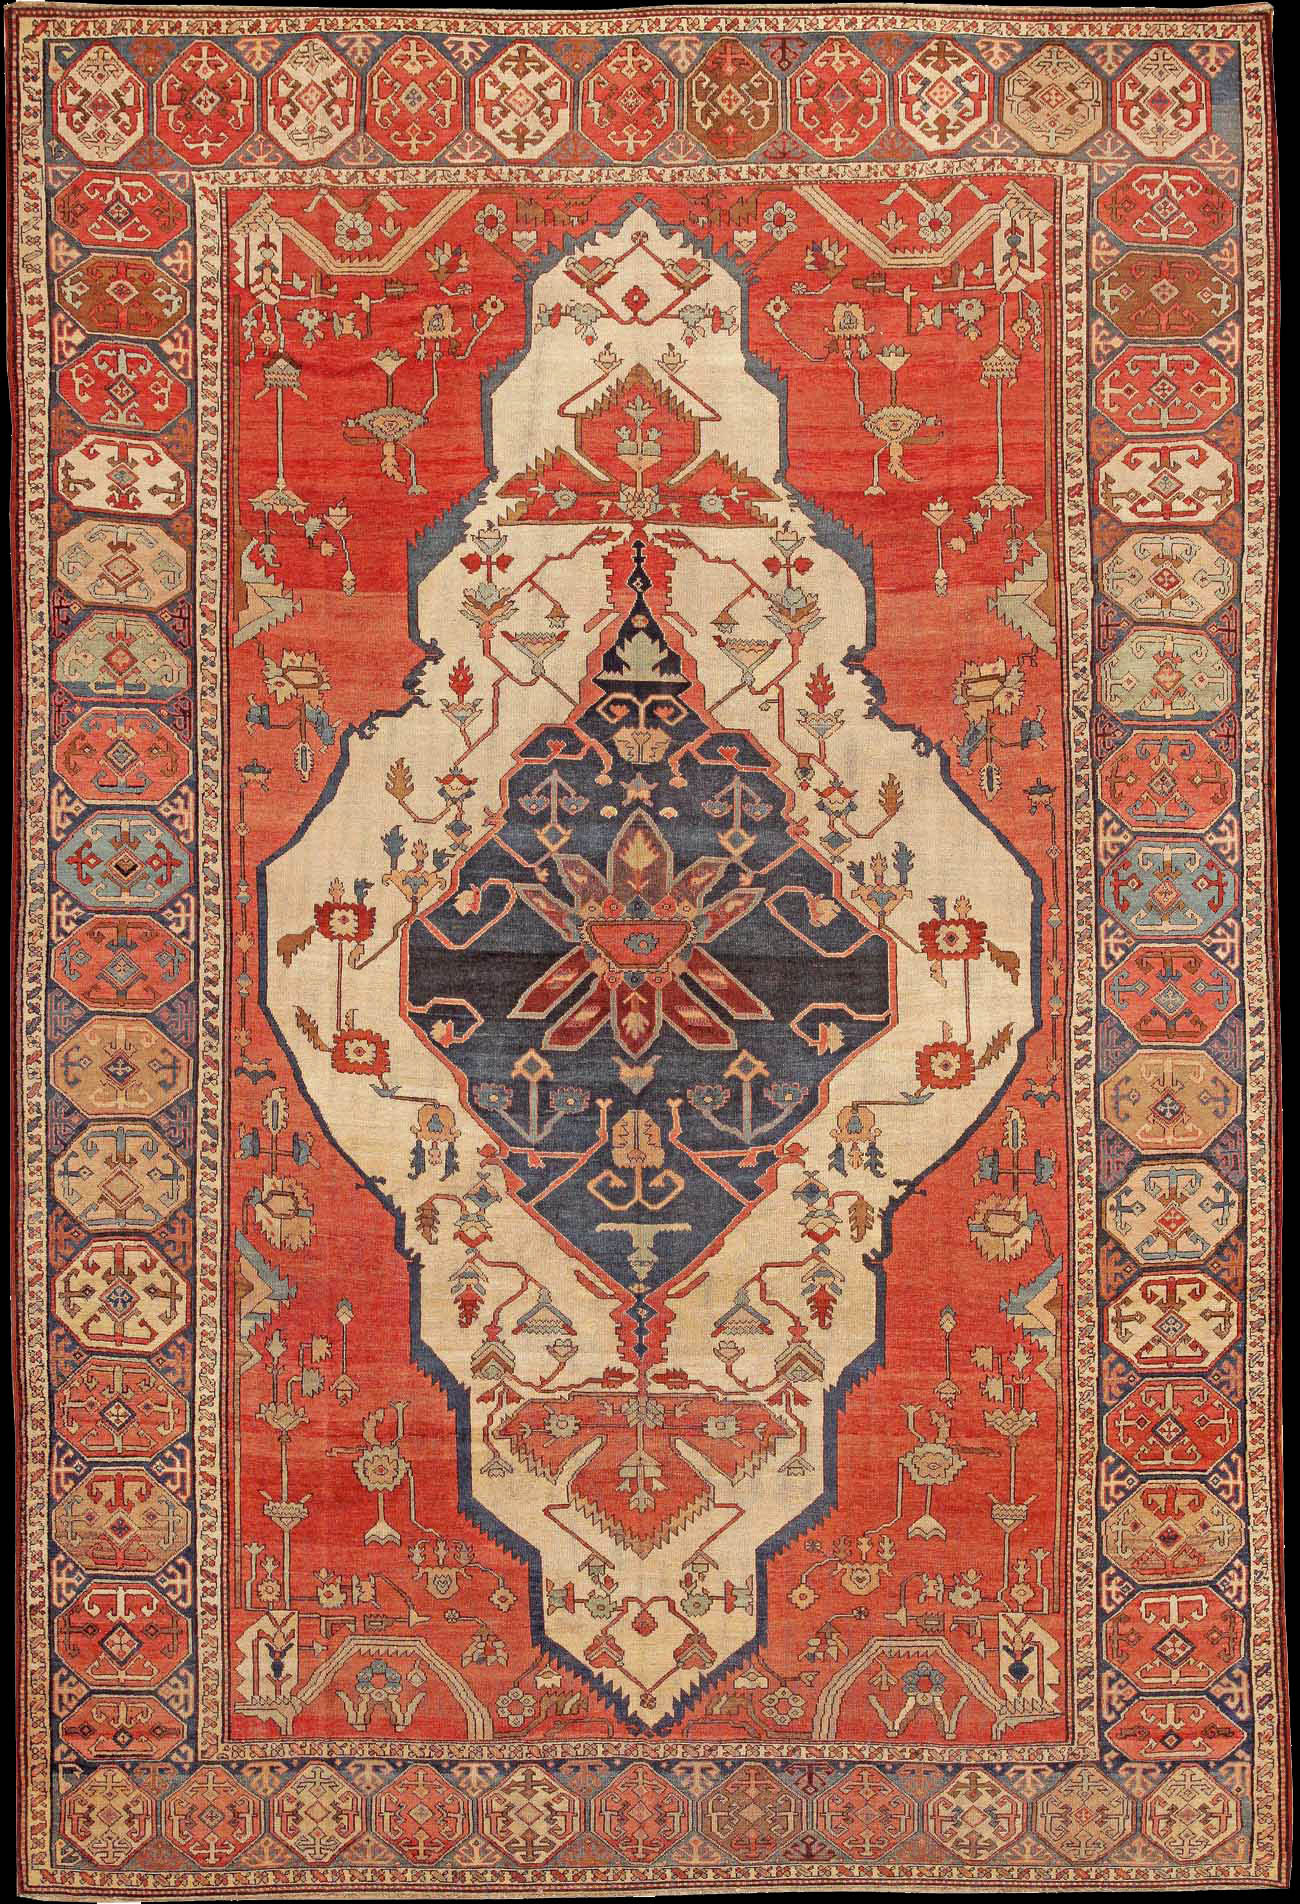 An Illustrational Guide To Antique Serapi Rugs And Carpets